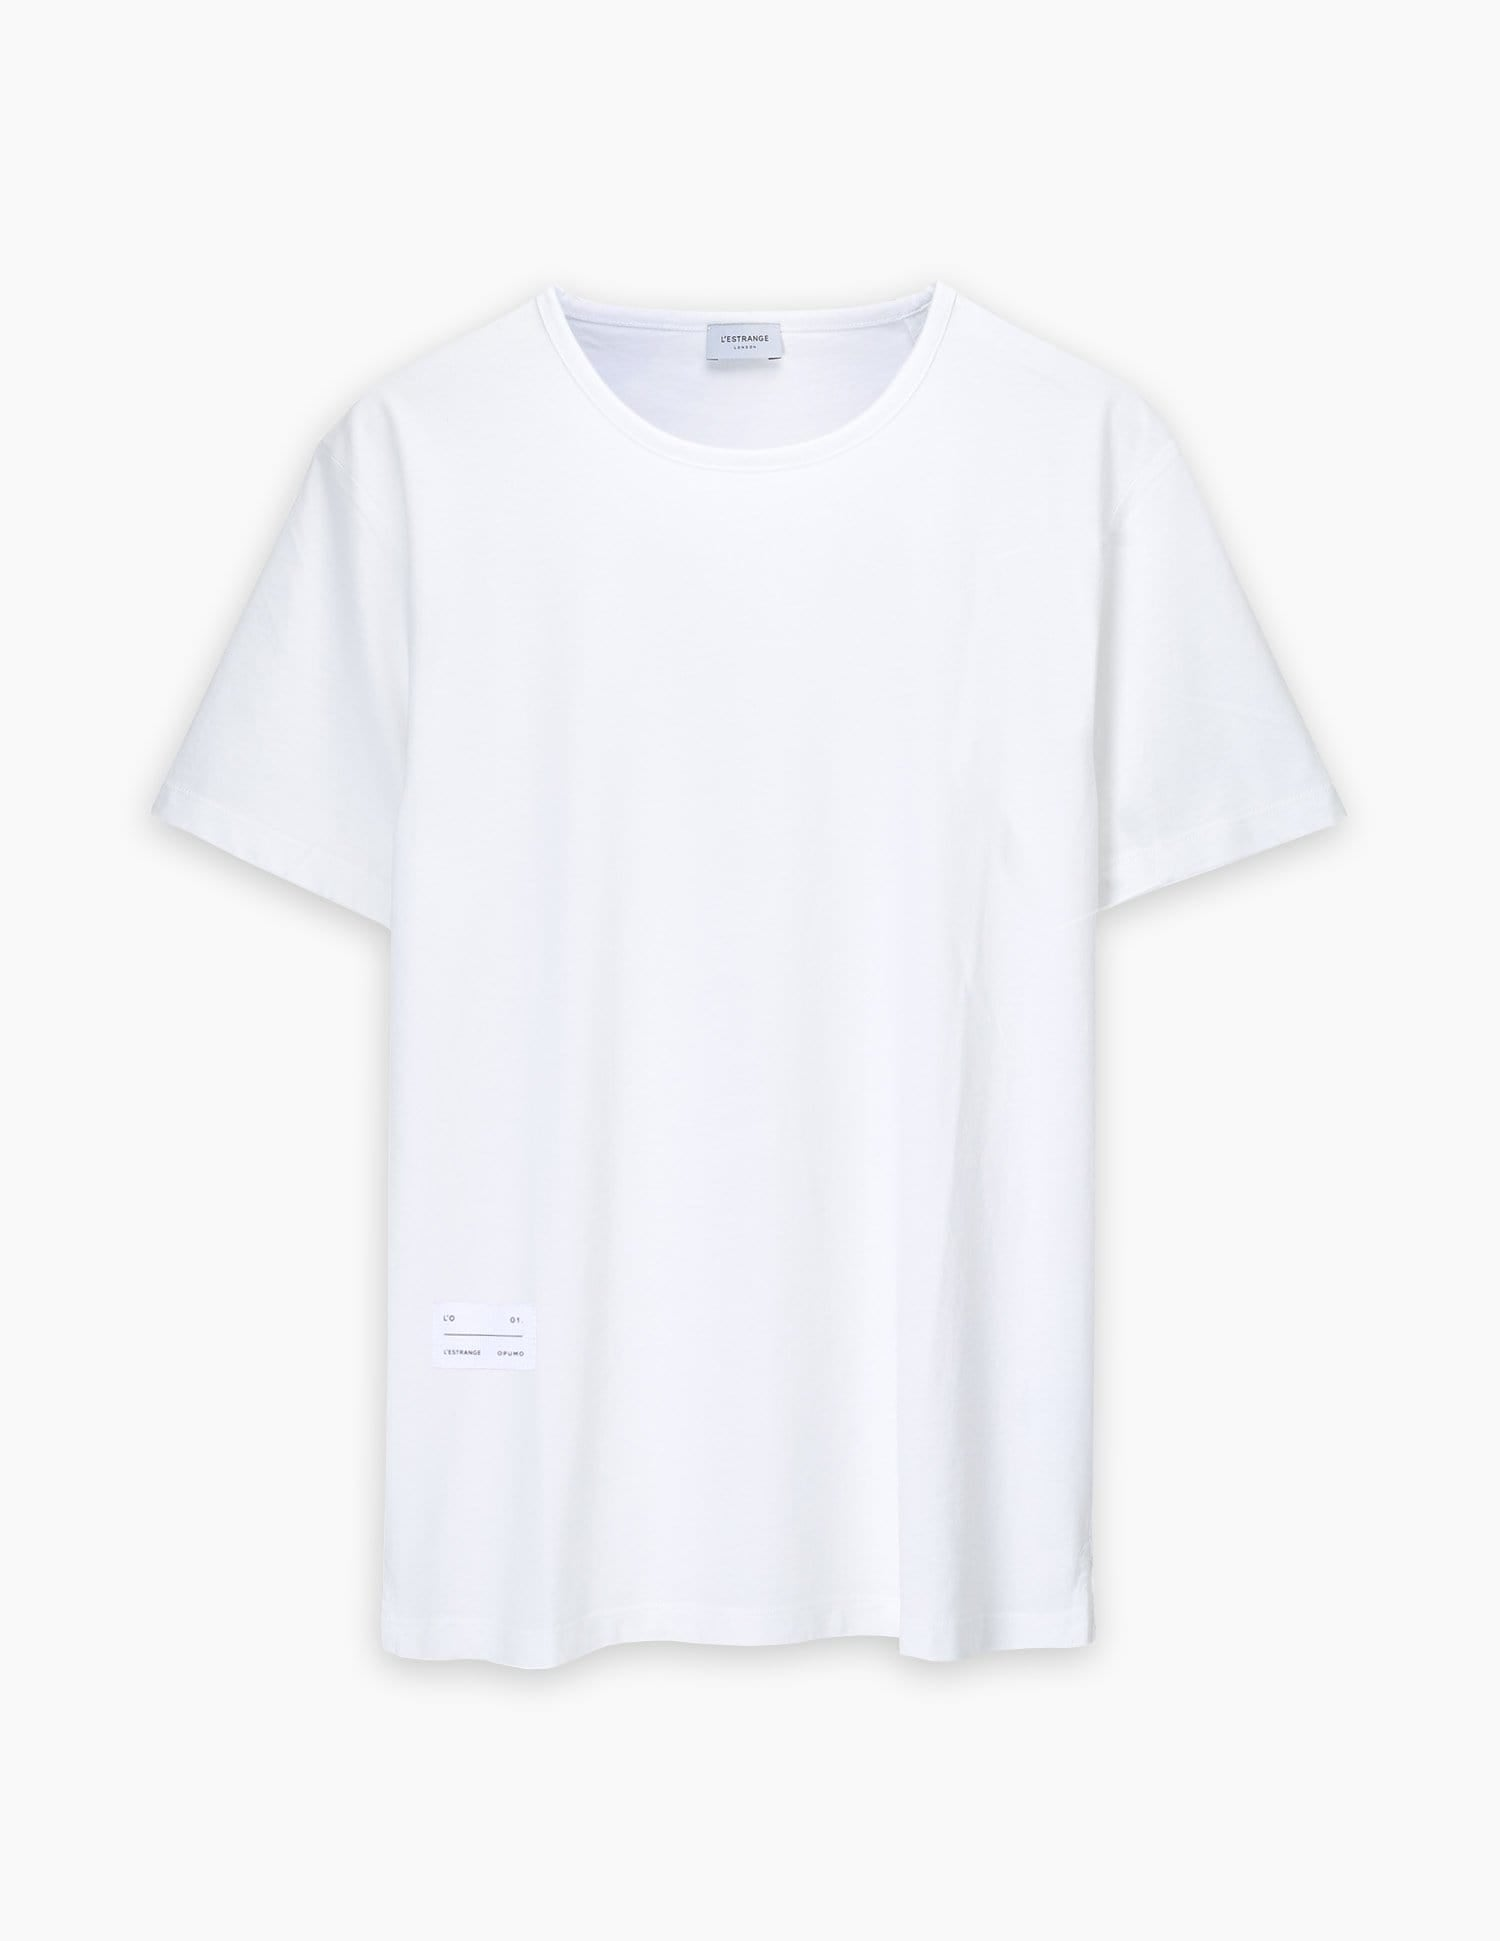 The Tailored Tee || White | L'Estrange X OPUMO